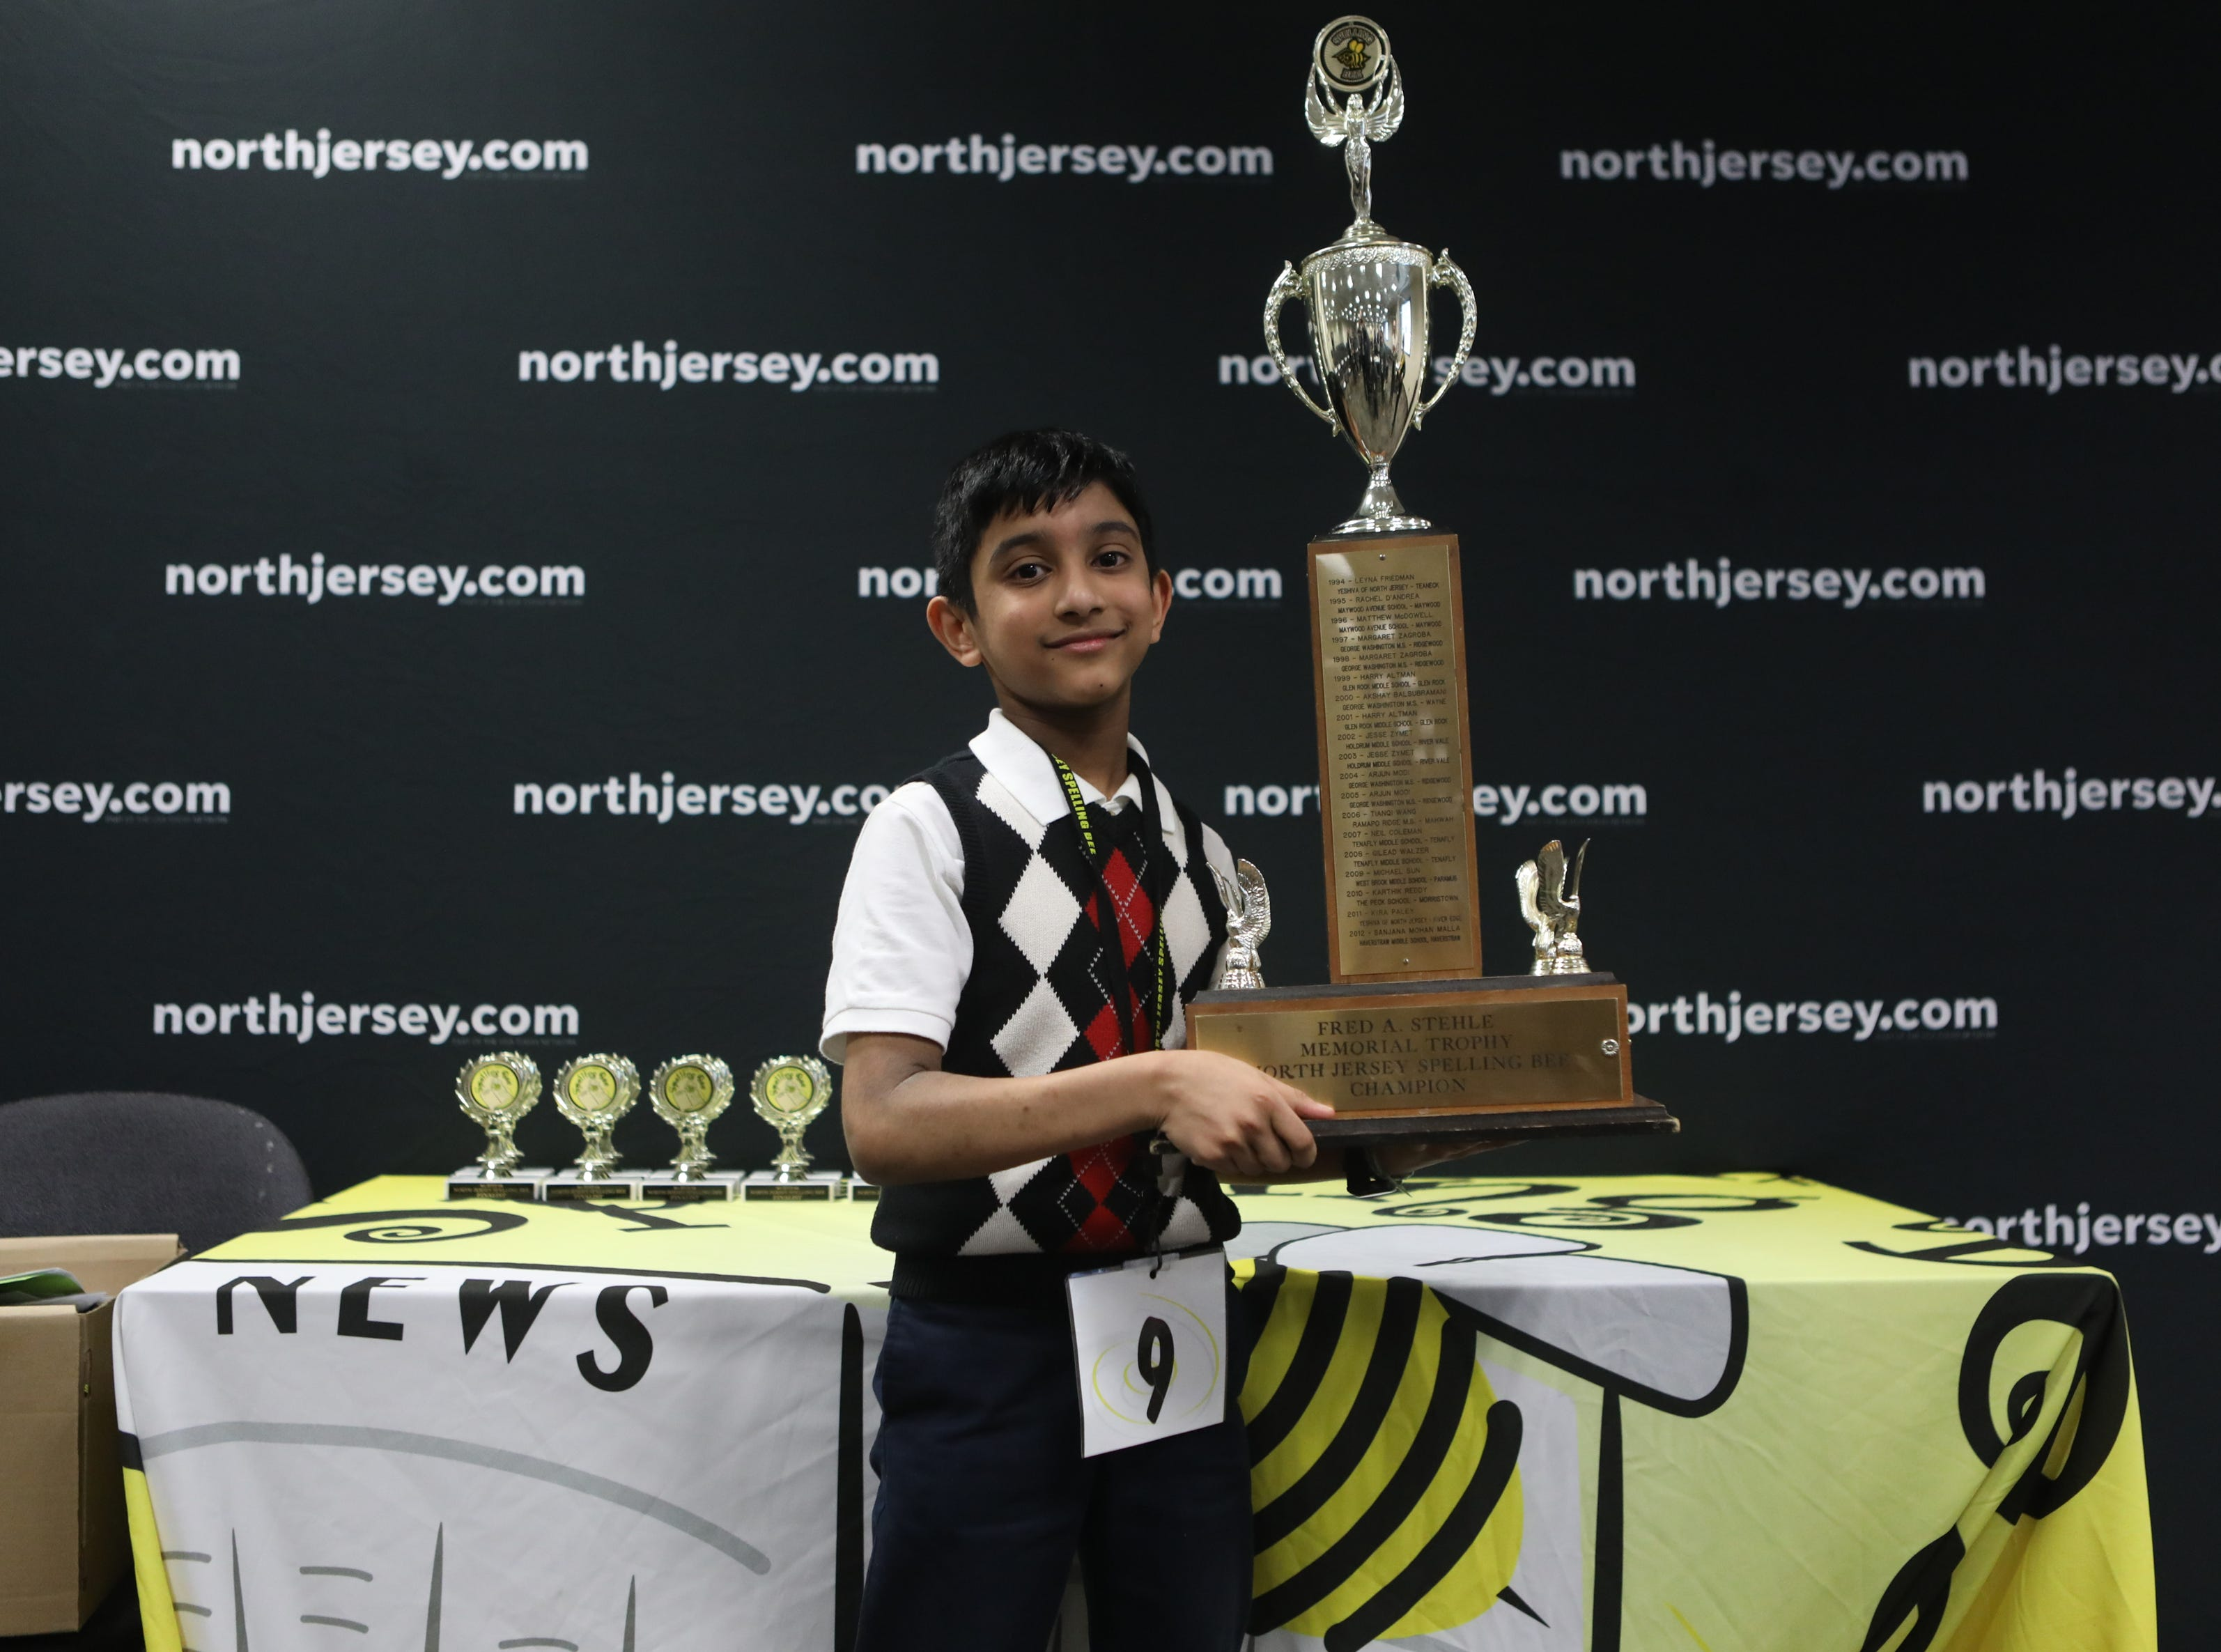 Jeremiah Markose poses with his trophy, after winning the spelling bee. Thursday, March 14, 2019